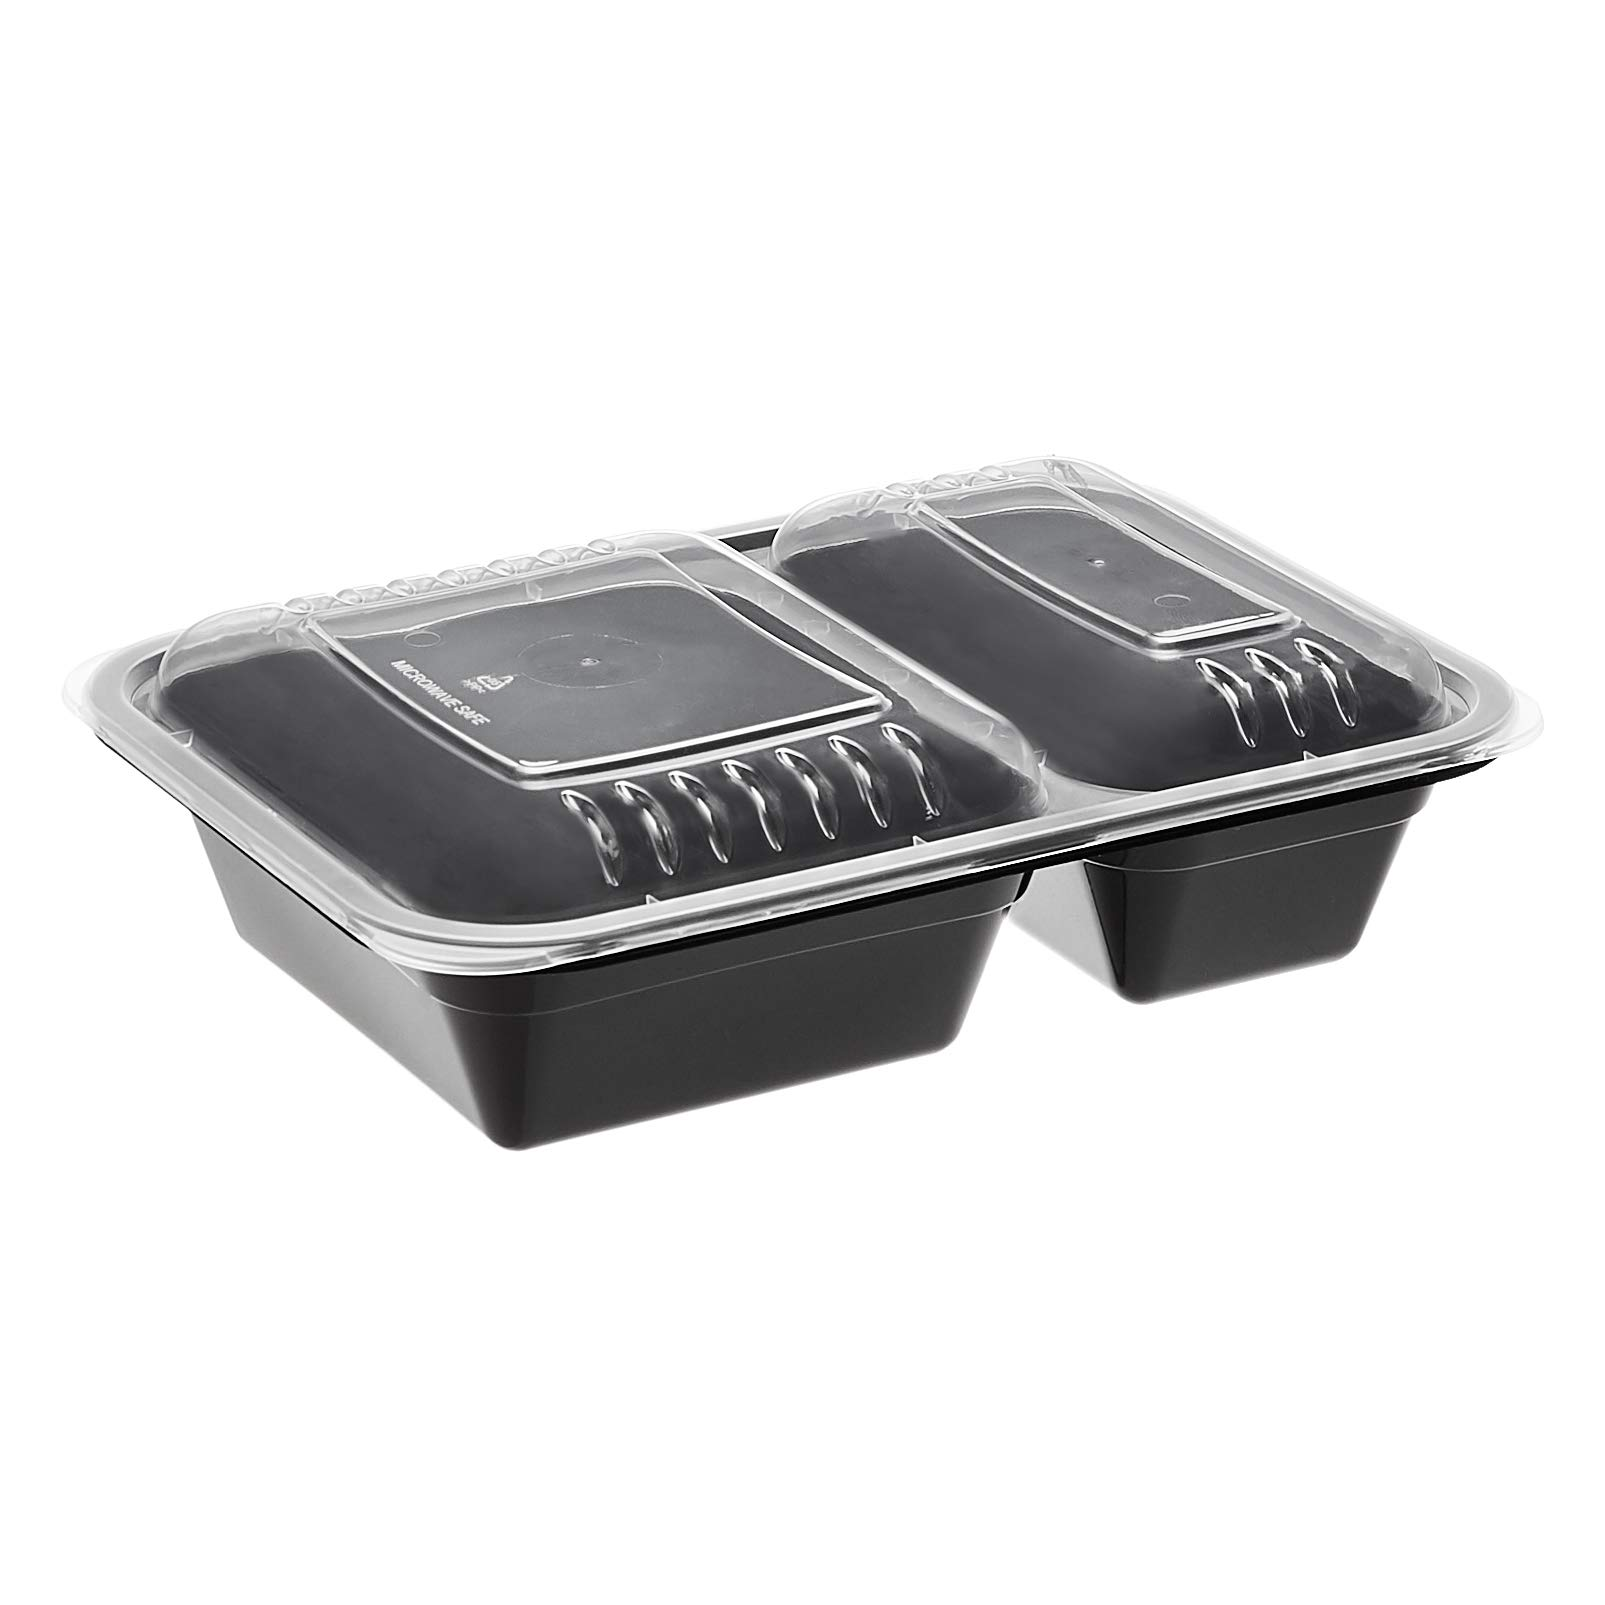 Amazon Basics 2 Compartment Meal Prep Containers - BPA Free, Microwave/Dishwasher/Freezer Safe, 32 ounces, 15-Pack